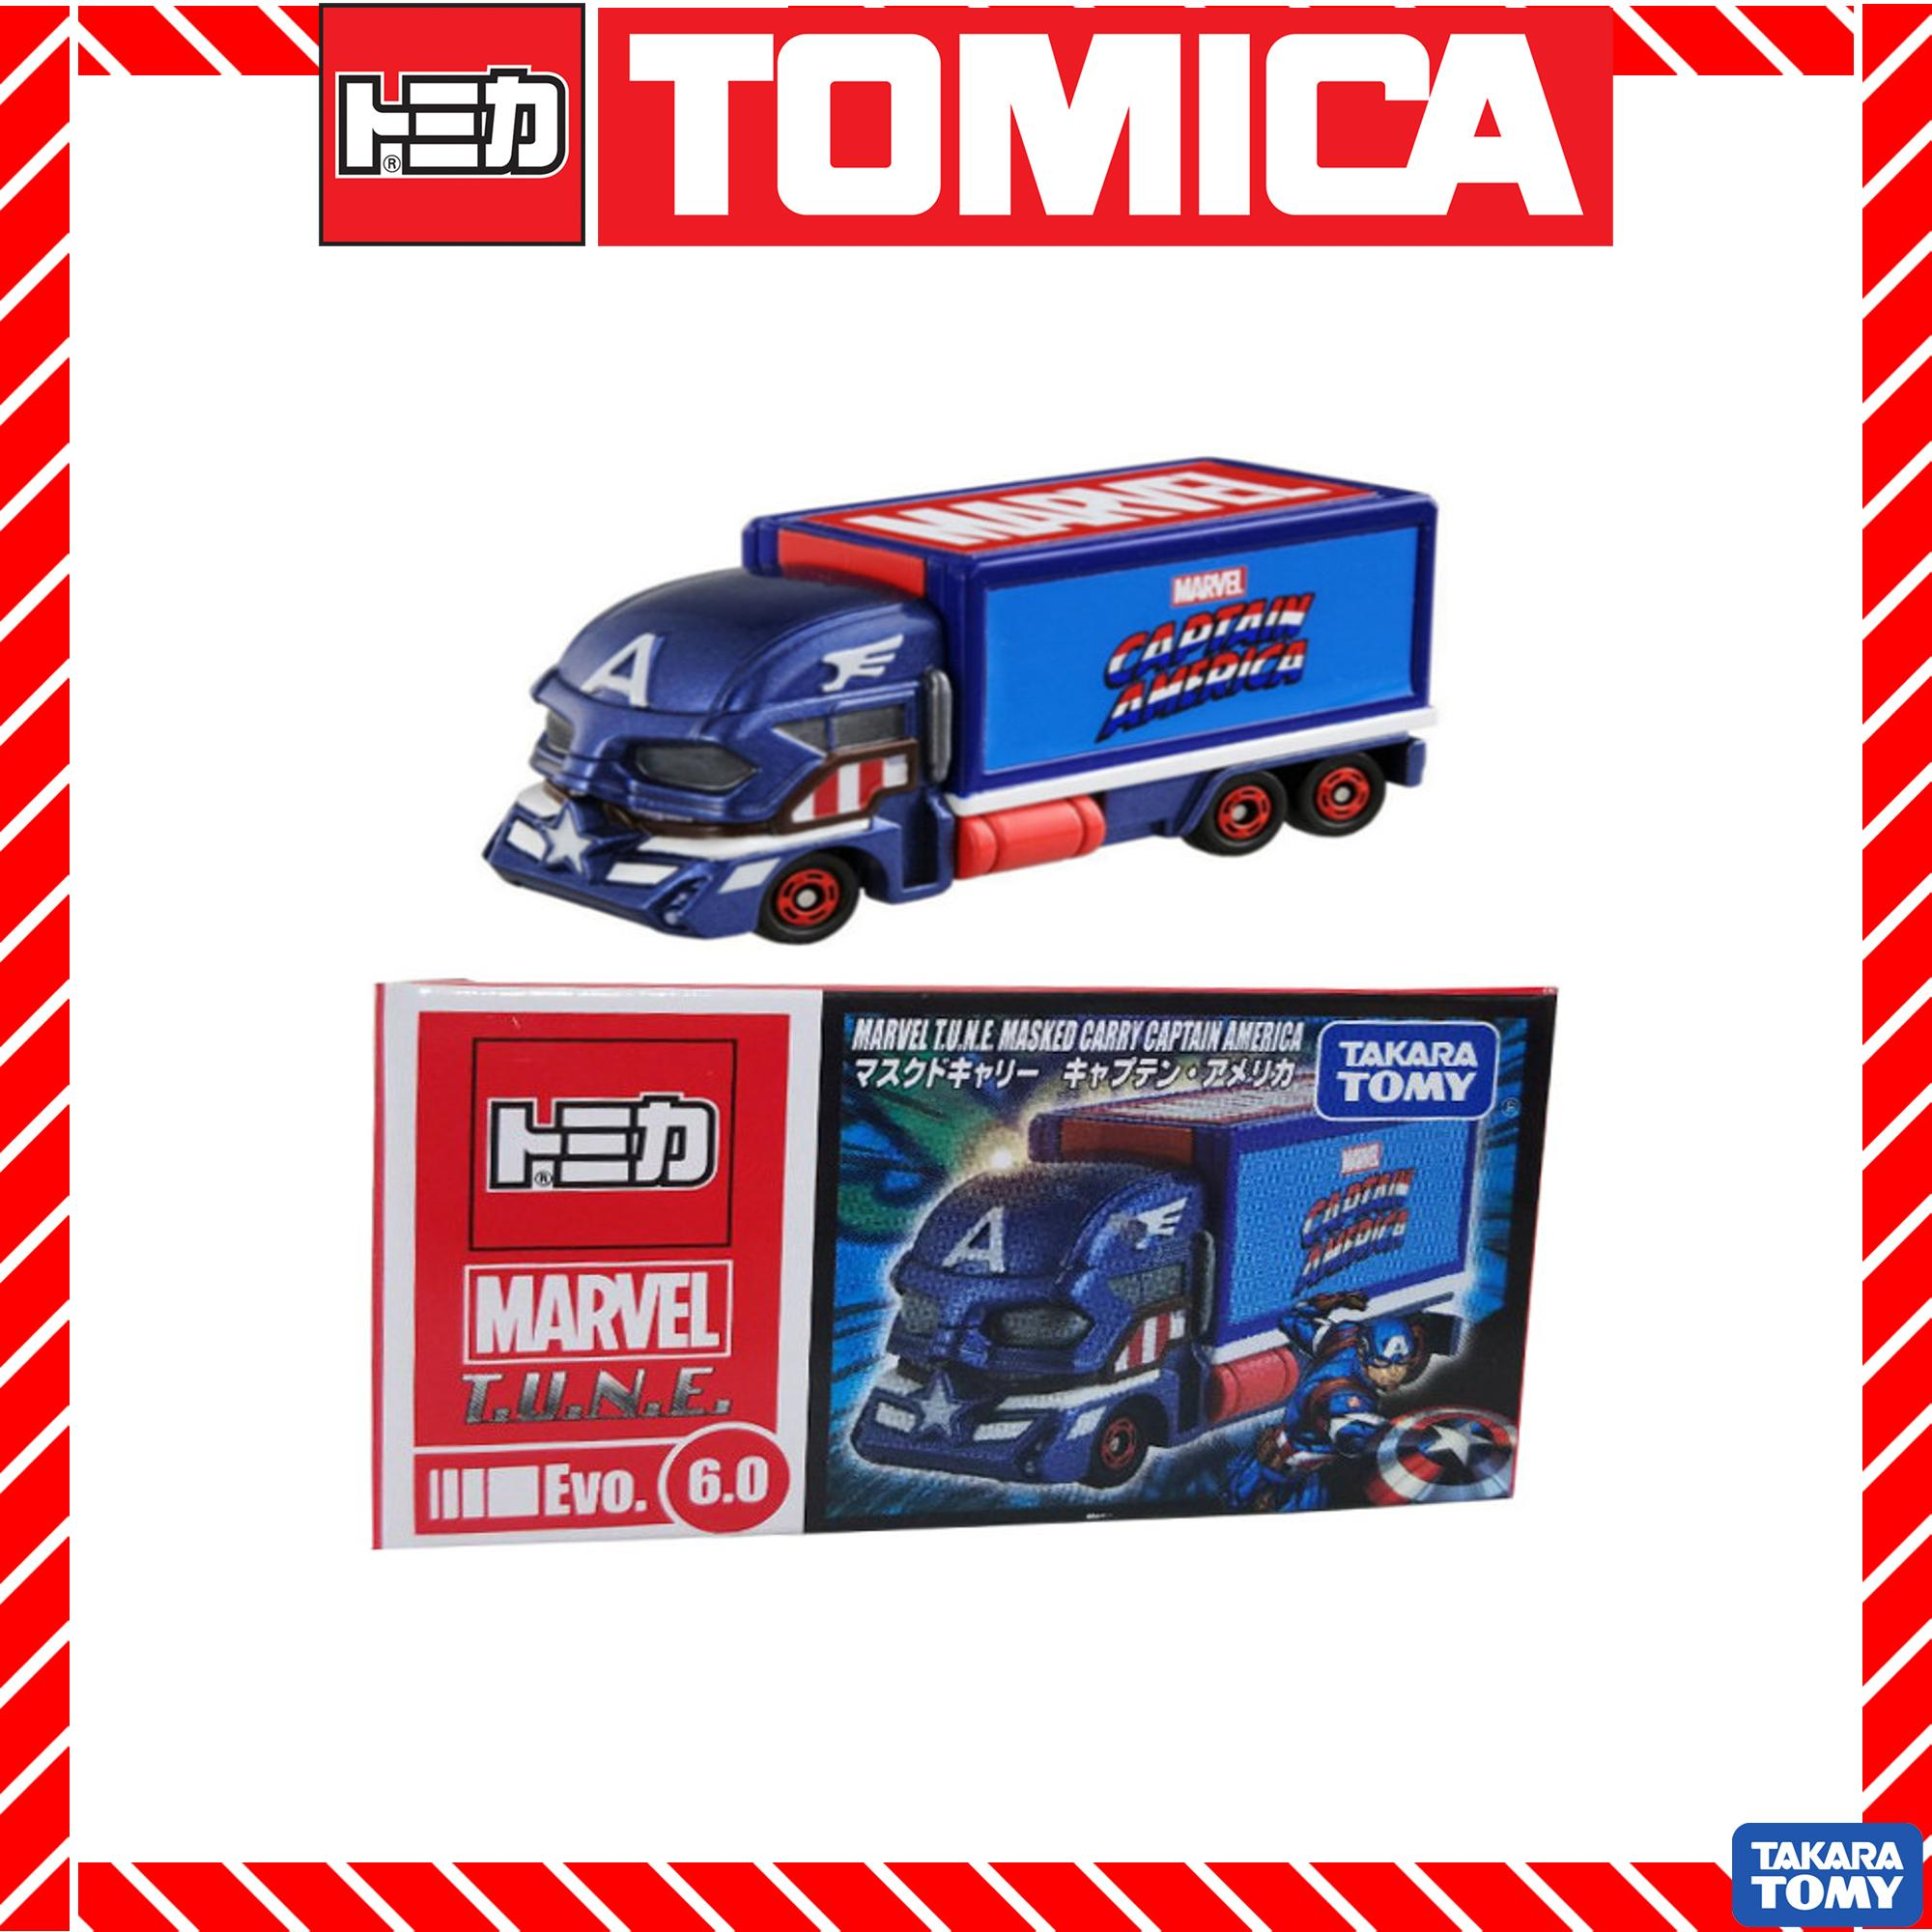 Tomica Philippines Price List Toy Car Truck For Suzuki Escudo No 14 Reguler Takara Tomy Marvel Tune Masked Carry Captain America